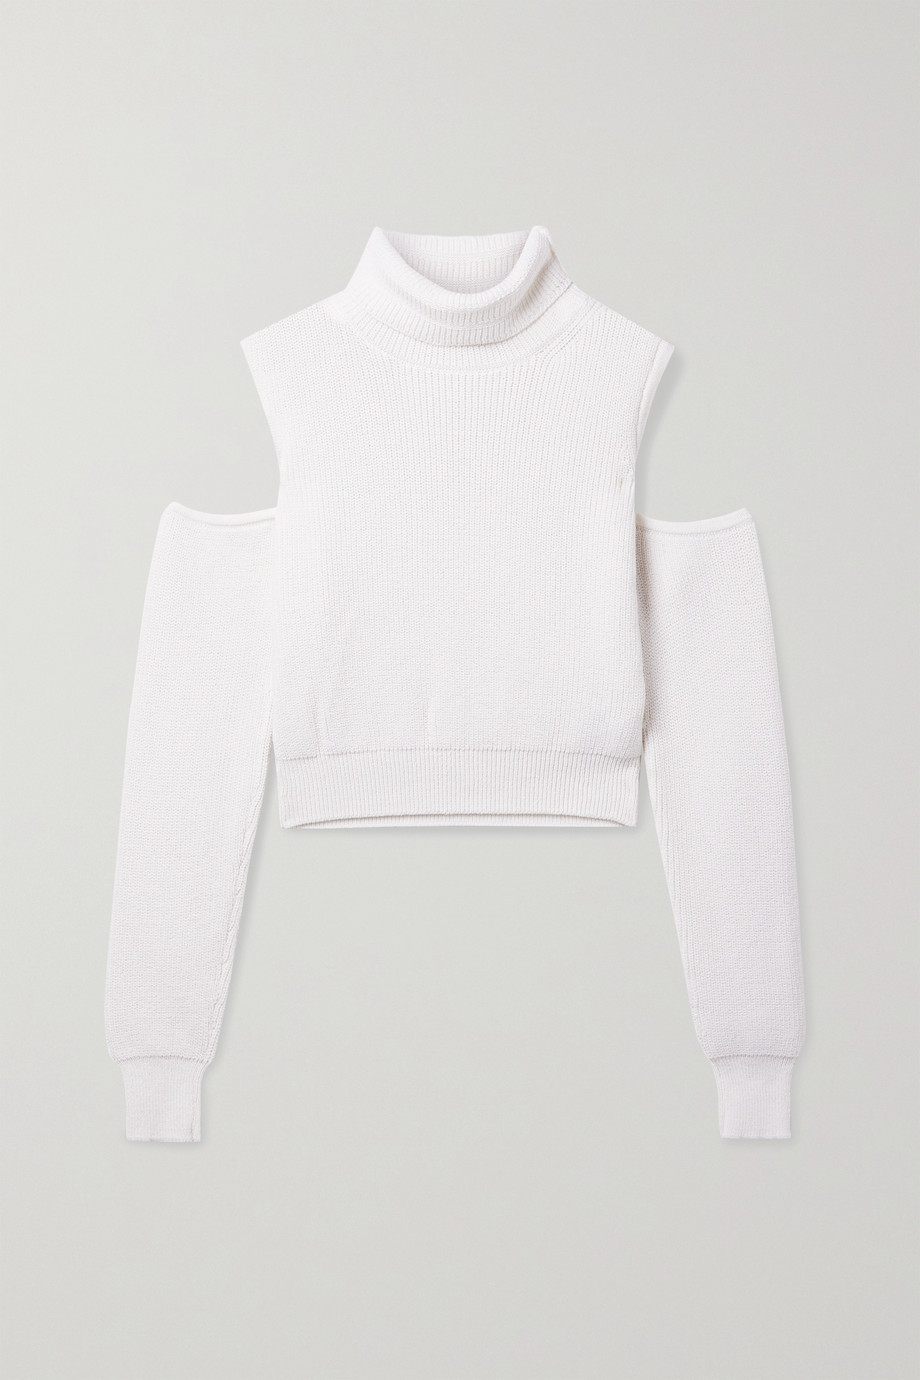 BRANDON MAXWELL Cold-shoulder ribbed wool-blend turtleneck sweater